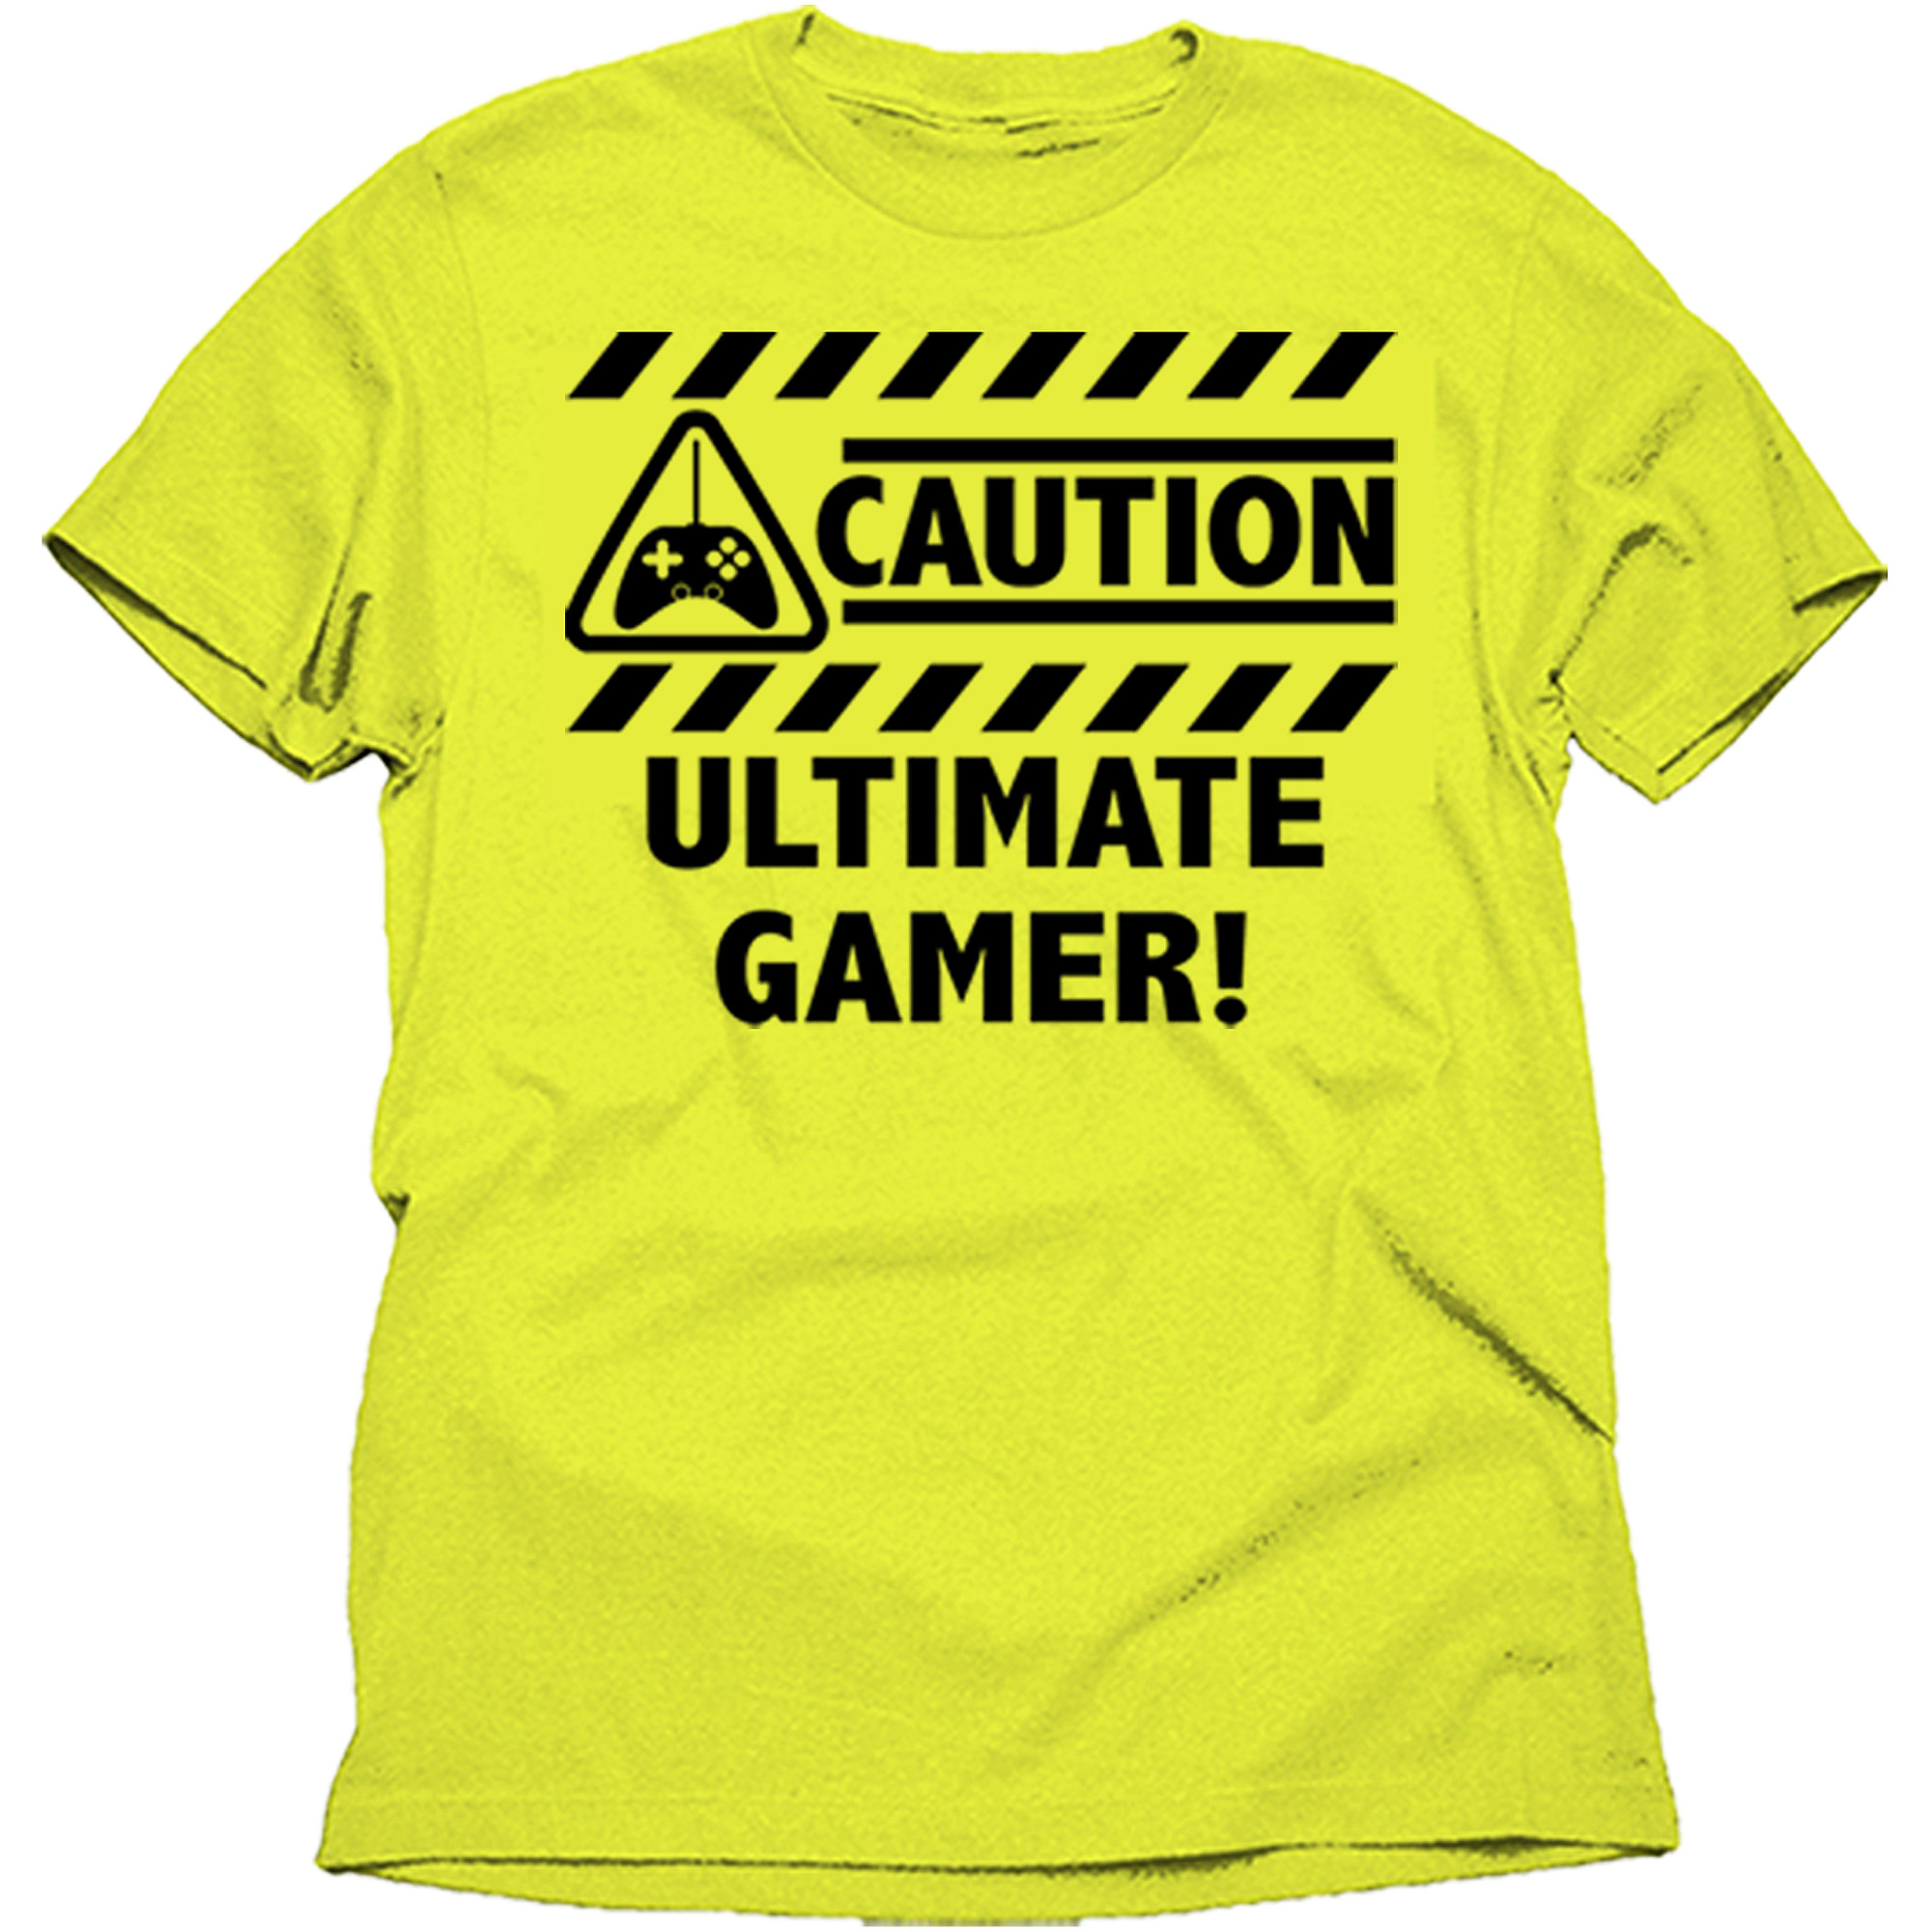 Ultimate Gamer Men's Graphic Tee Shirt